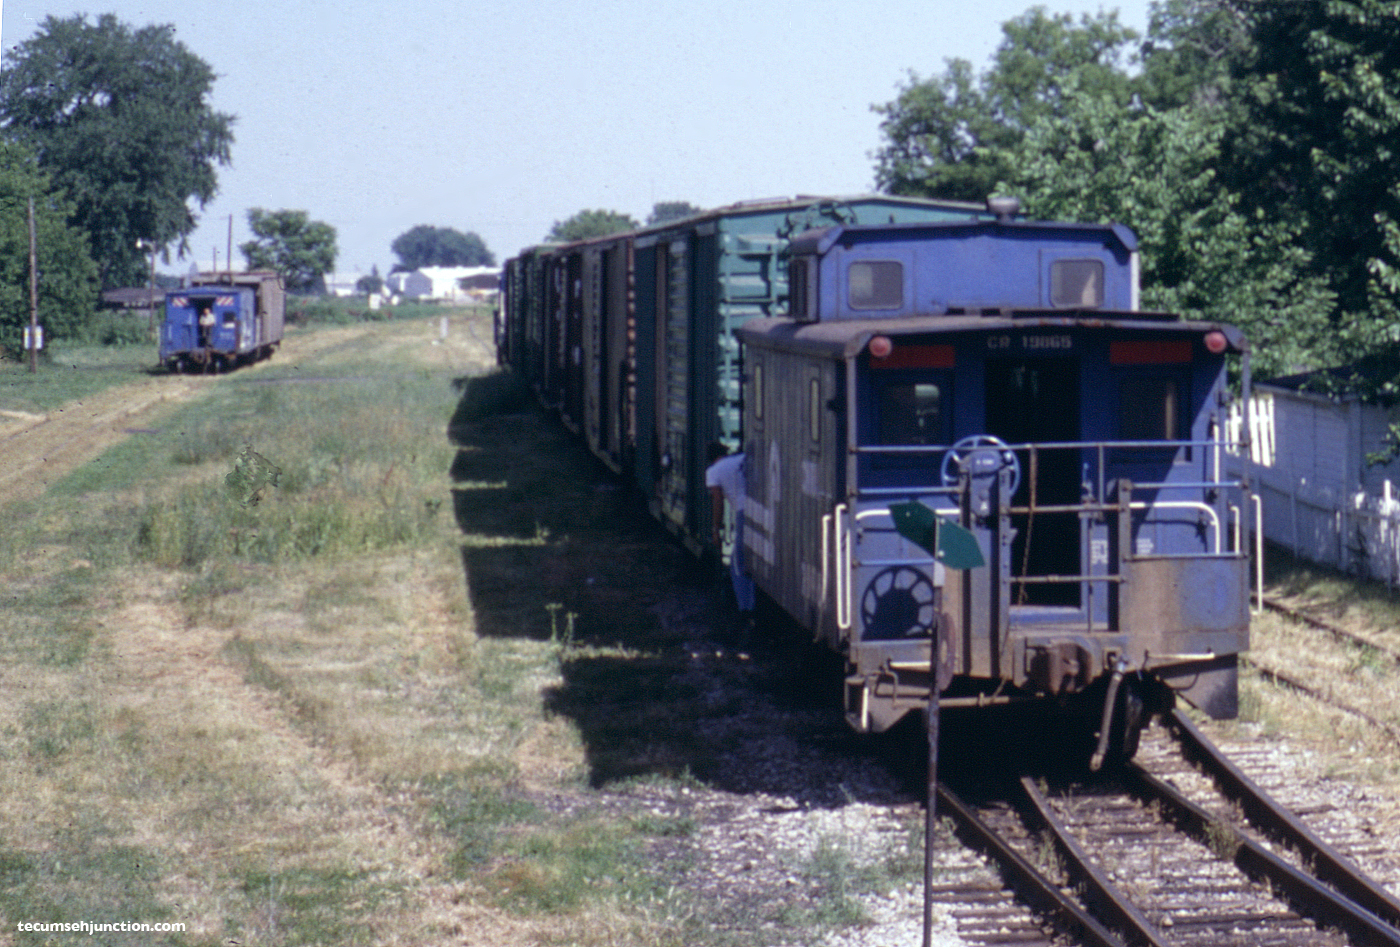 Cabooses at Blissfield, MI on 26 June 1979